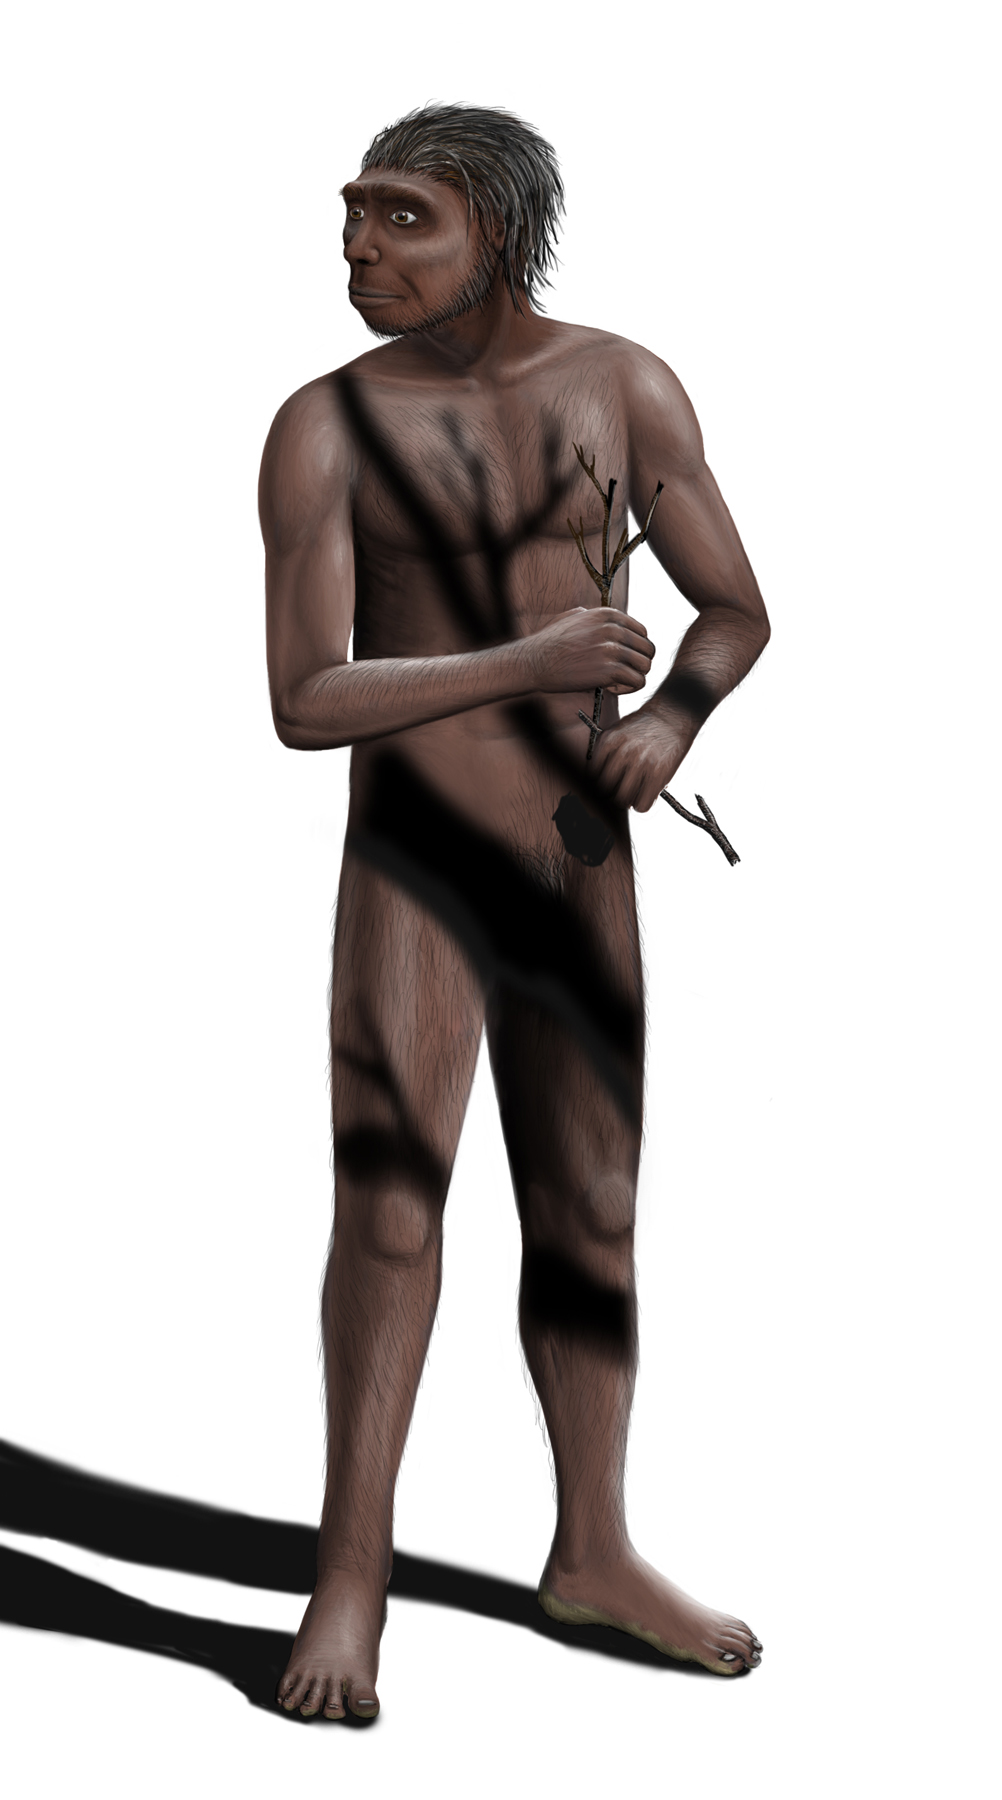 http://upload.wikimedia.org/wikipedia/commons/archive/a/af/20080521191715!Homo_erectus_Steveoc_86.jpg